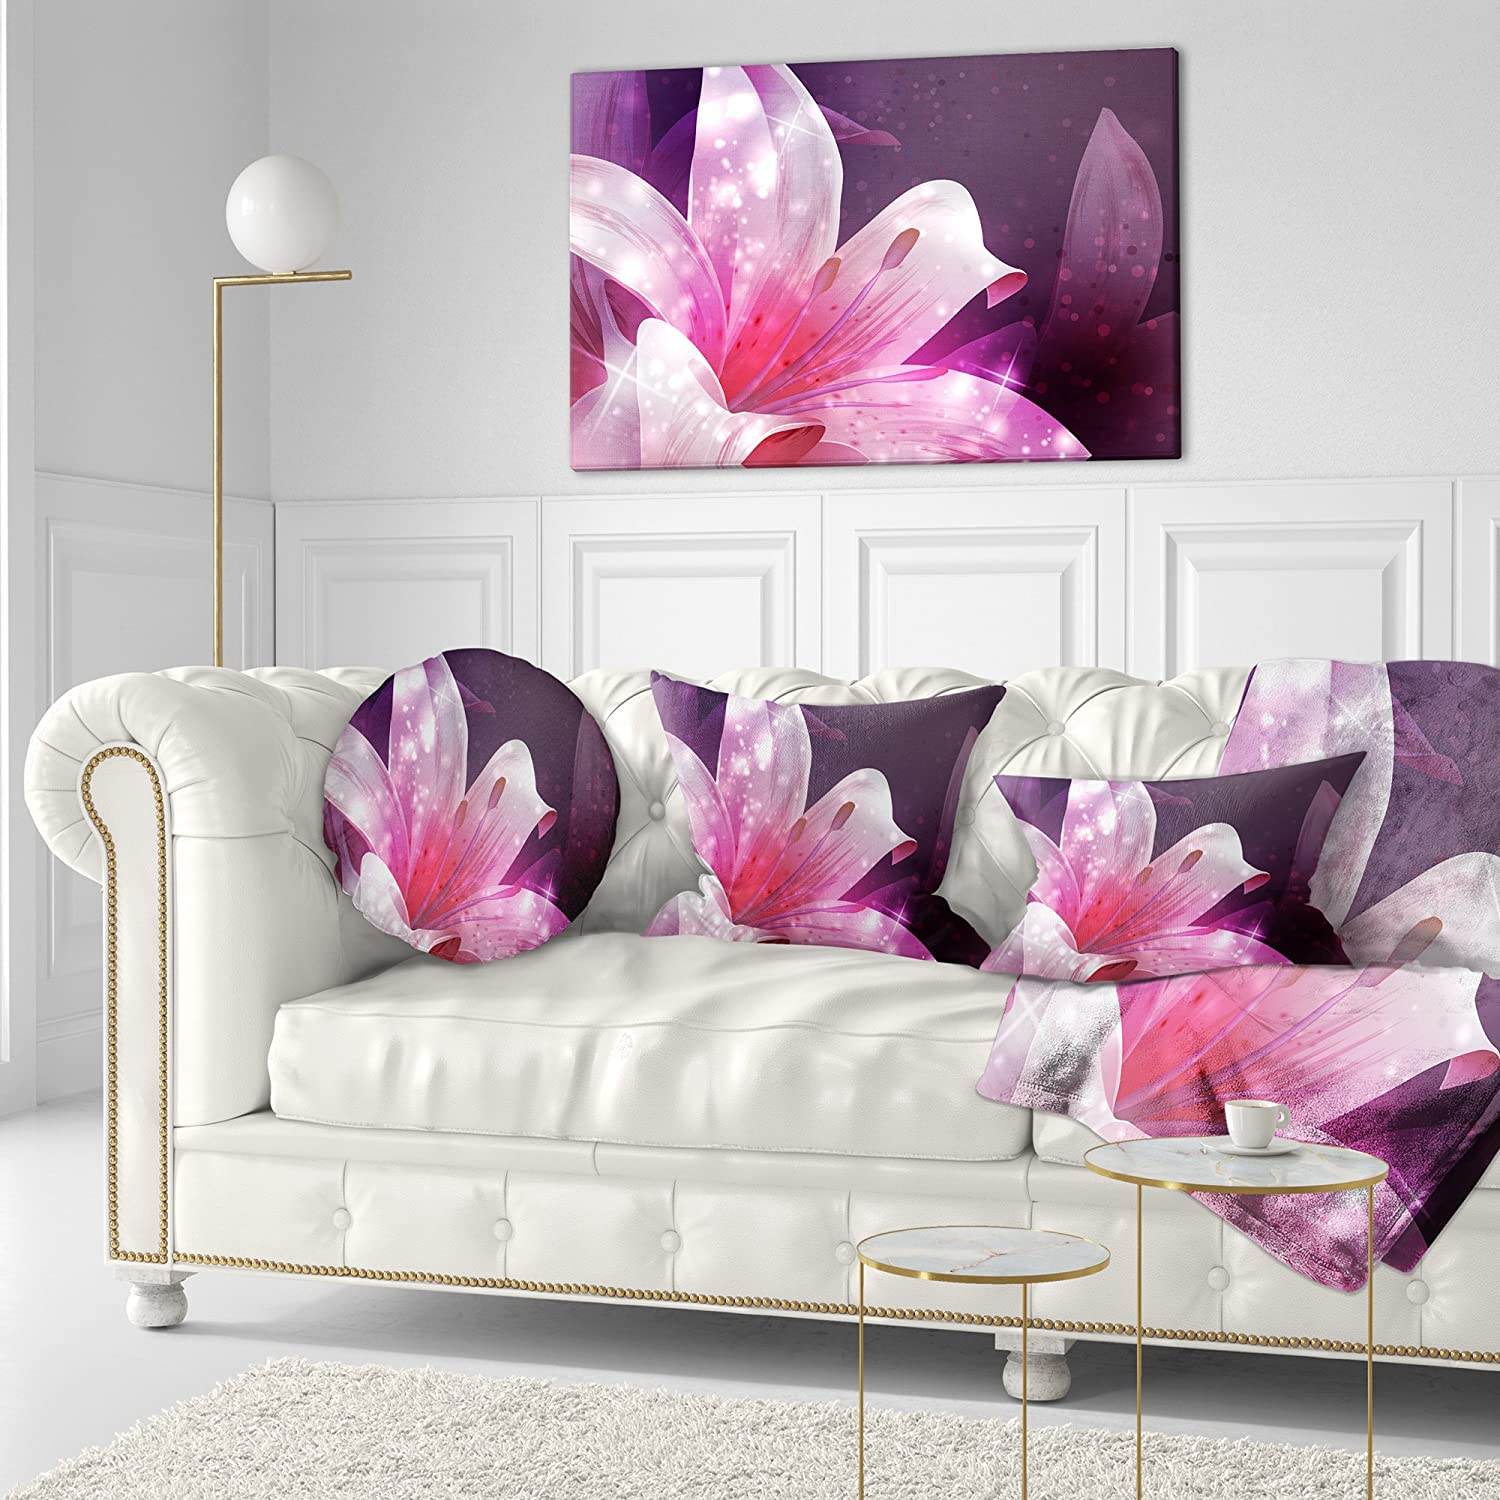 Insert Printed On Both Side 16 Designart CU8123-16-16-C Shining Pink Fractal Flower Floral Round Cushion Cover for Living Room Sofa Throw Pillow